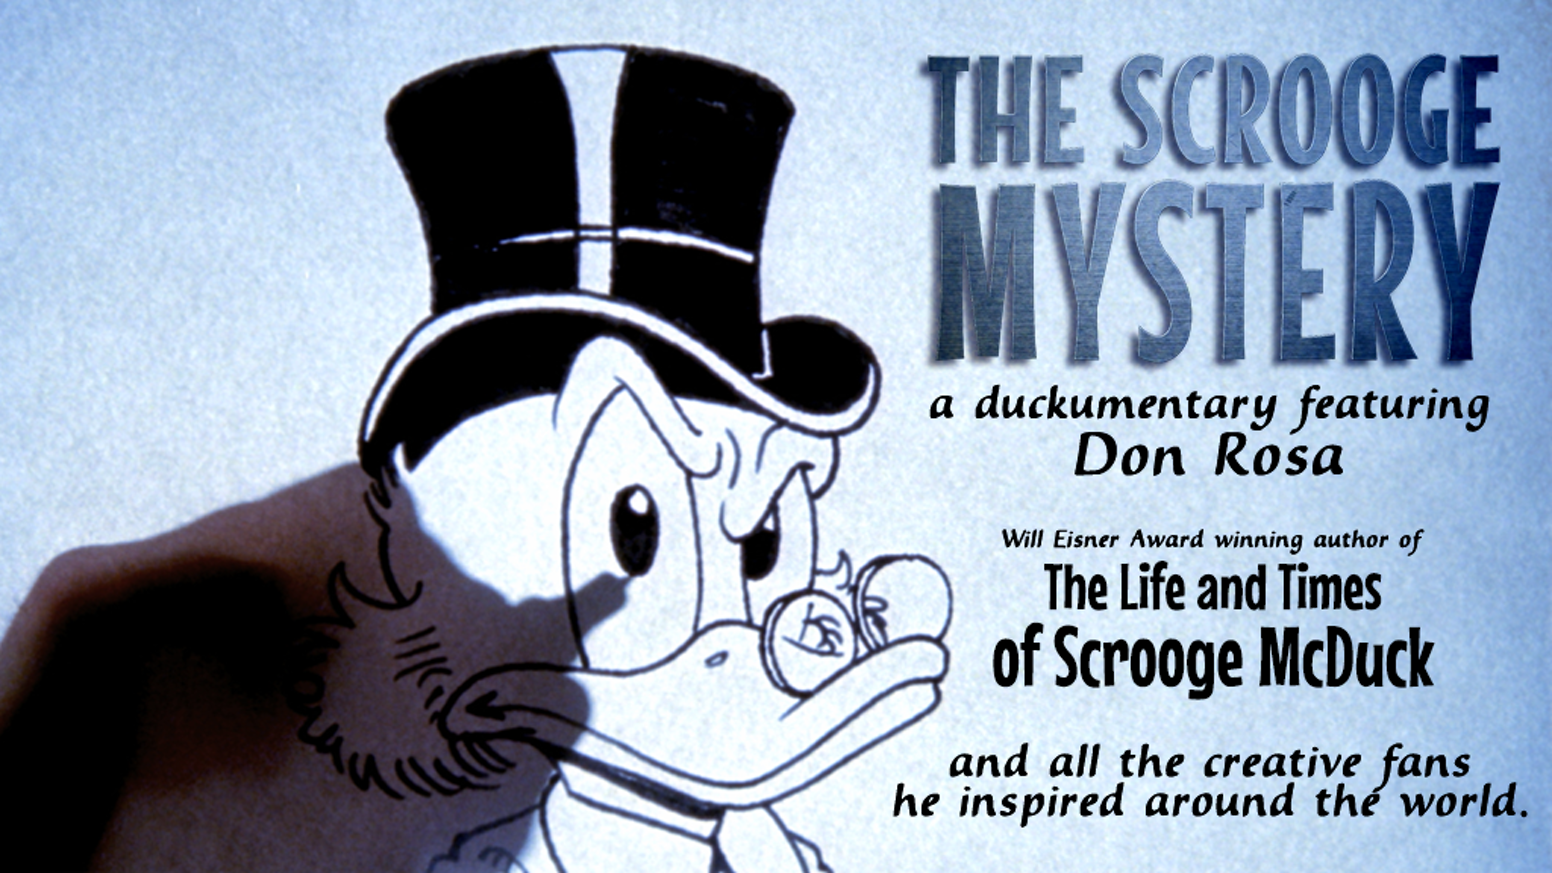 A documentary for the 70th anniversary of comic-book character Uncle Scrooge McDuck and its impact on the creative world.